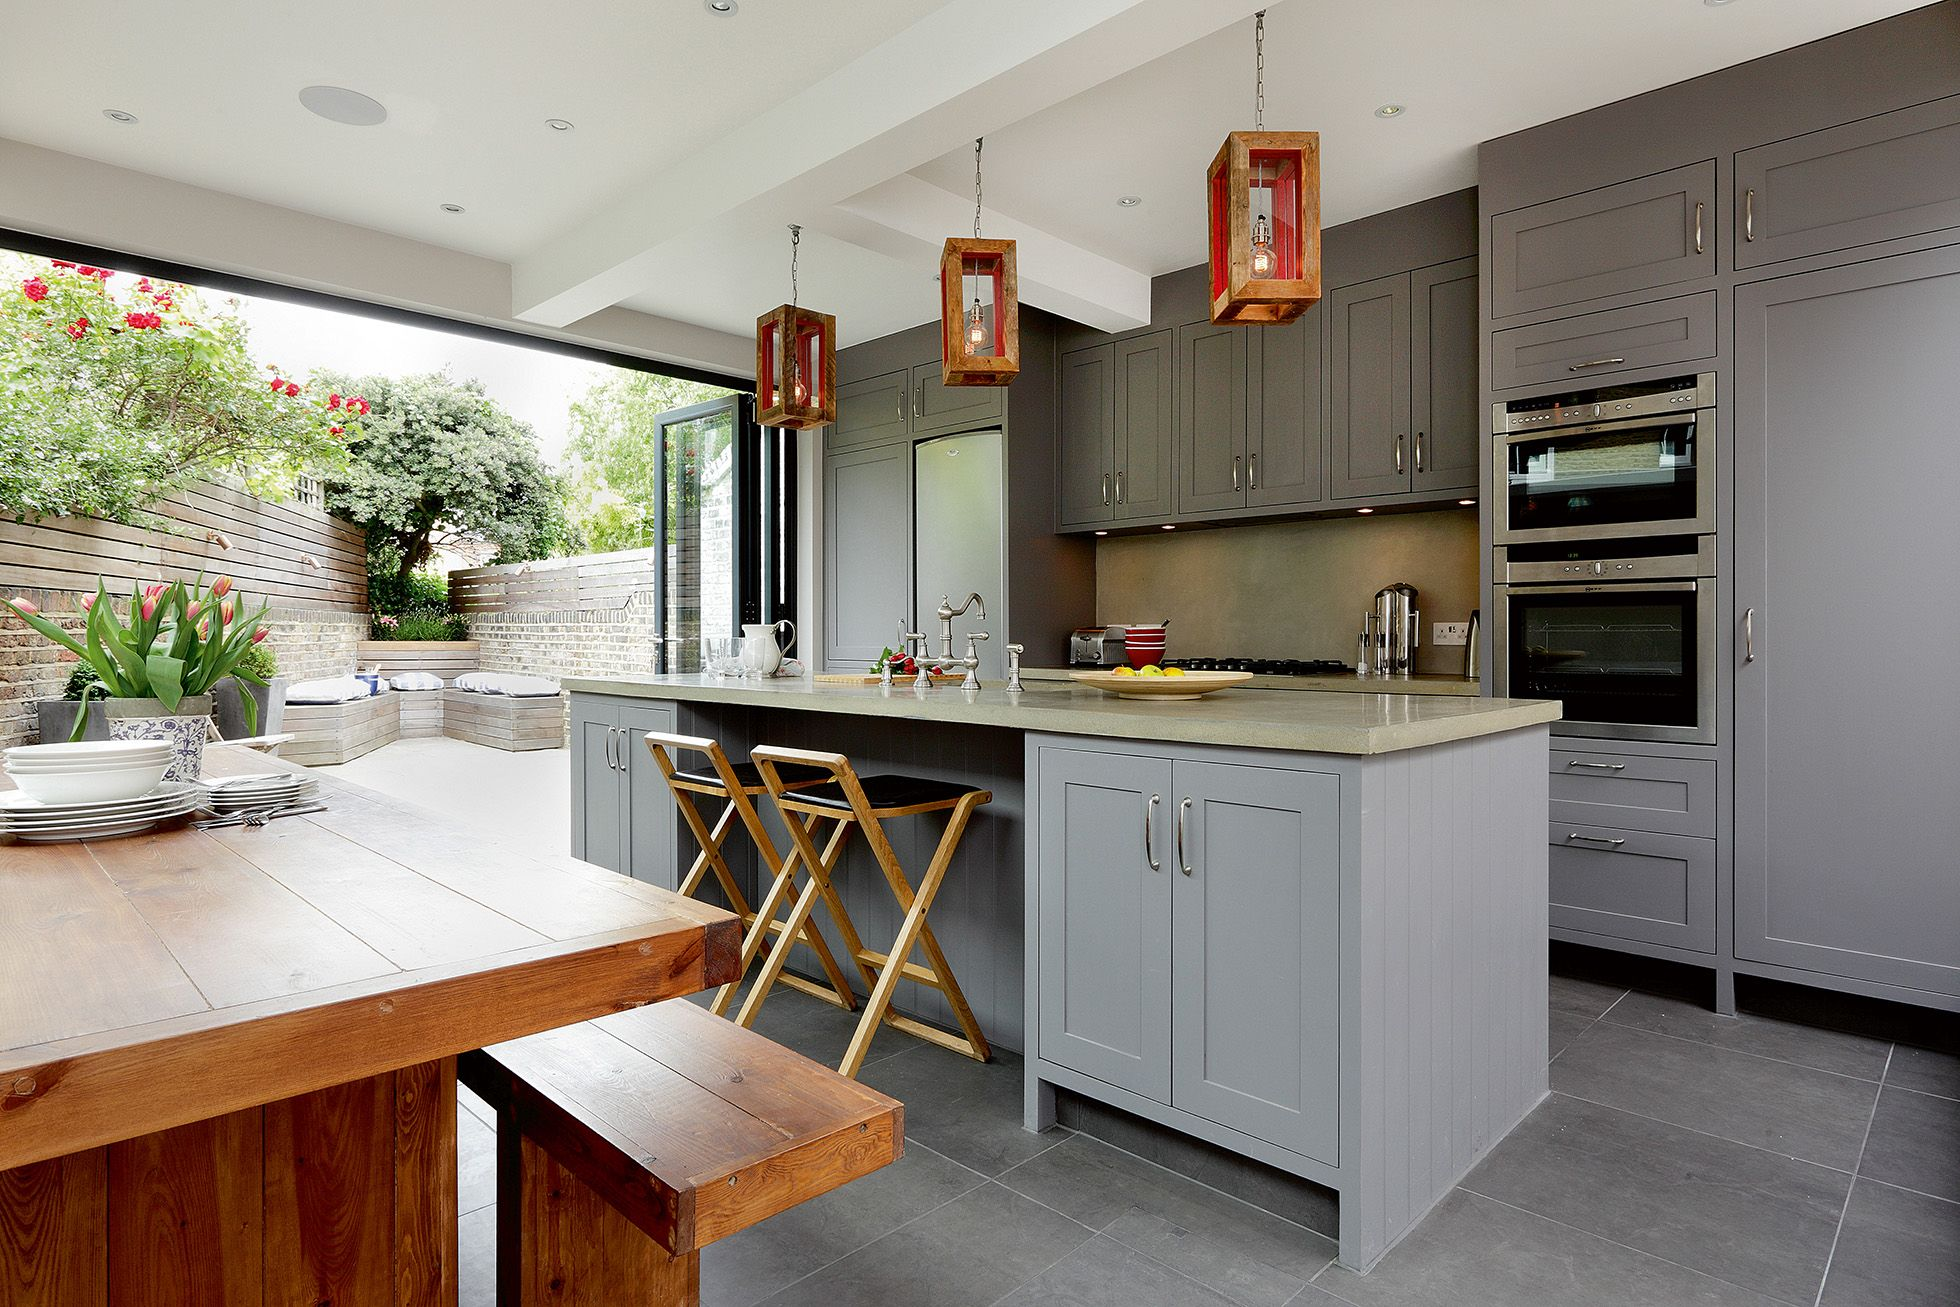 Picture Of Open Small Kitchen Victorian Terrace With Grey - Victorian kitchen extension design ideas